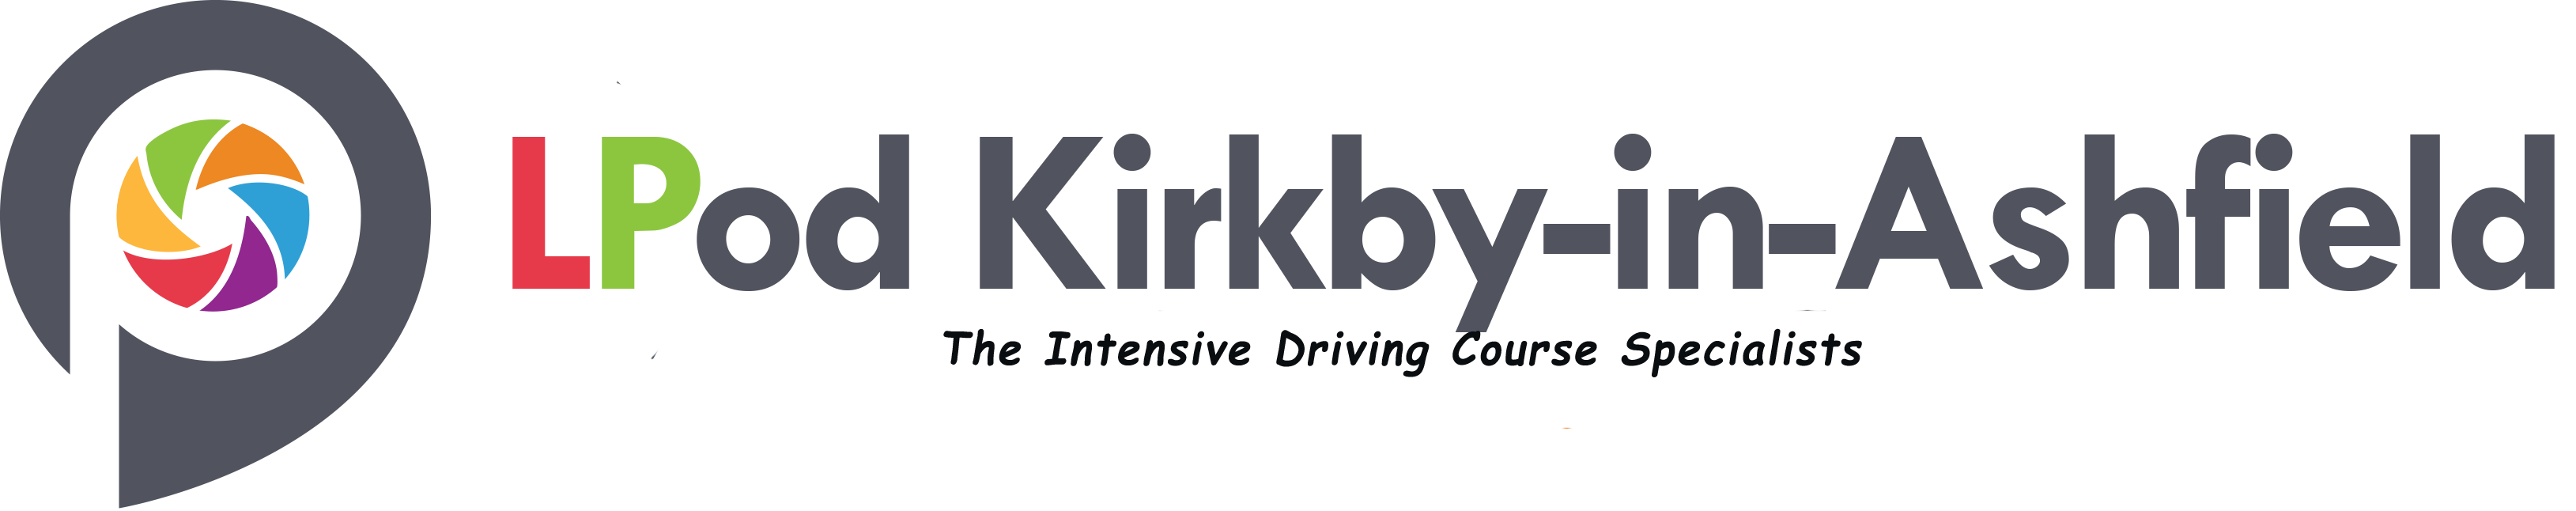 intensive driving courses Kirkby-in-Ashfield